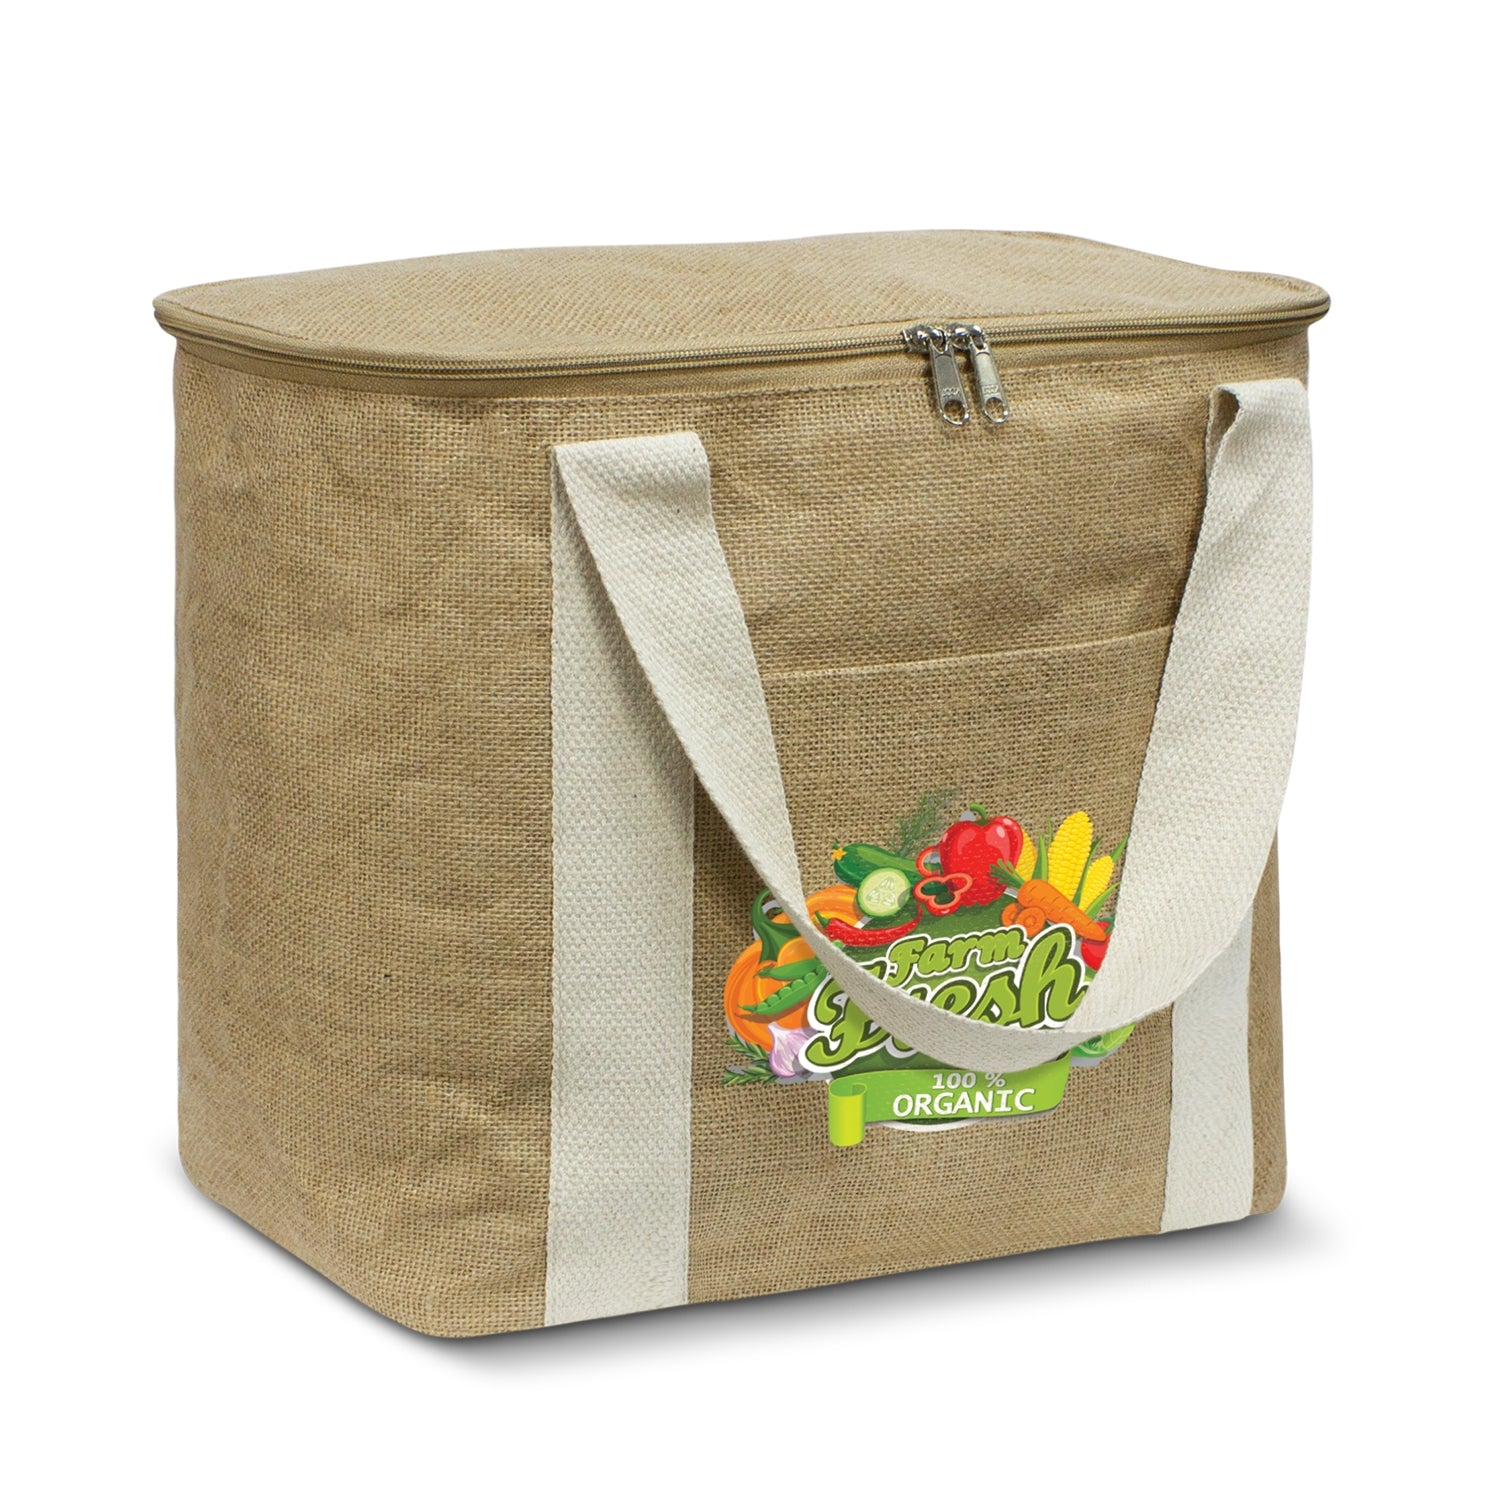 Stock Jute Cooler Bag-Large (SJB-18T) - greenpac.com.au